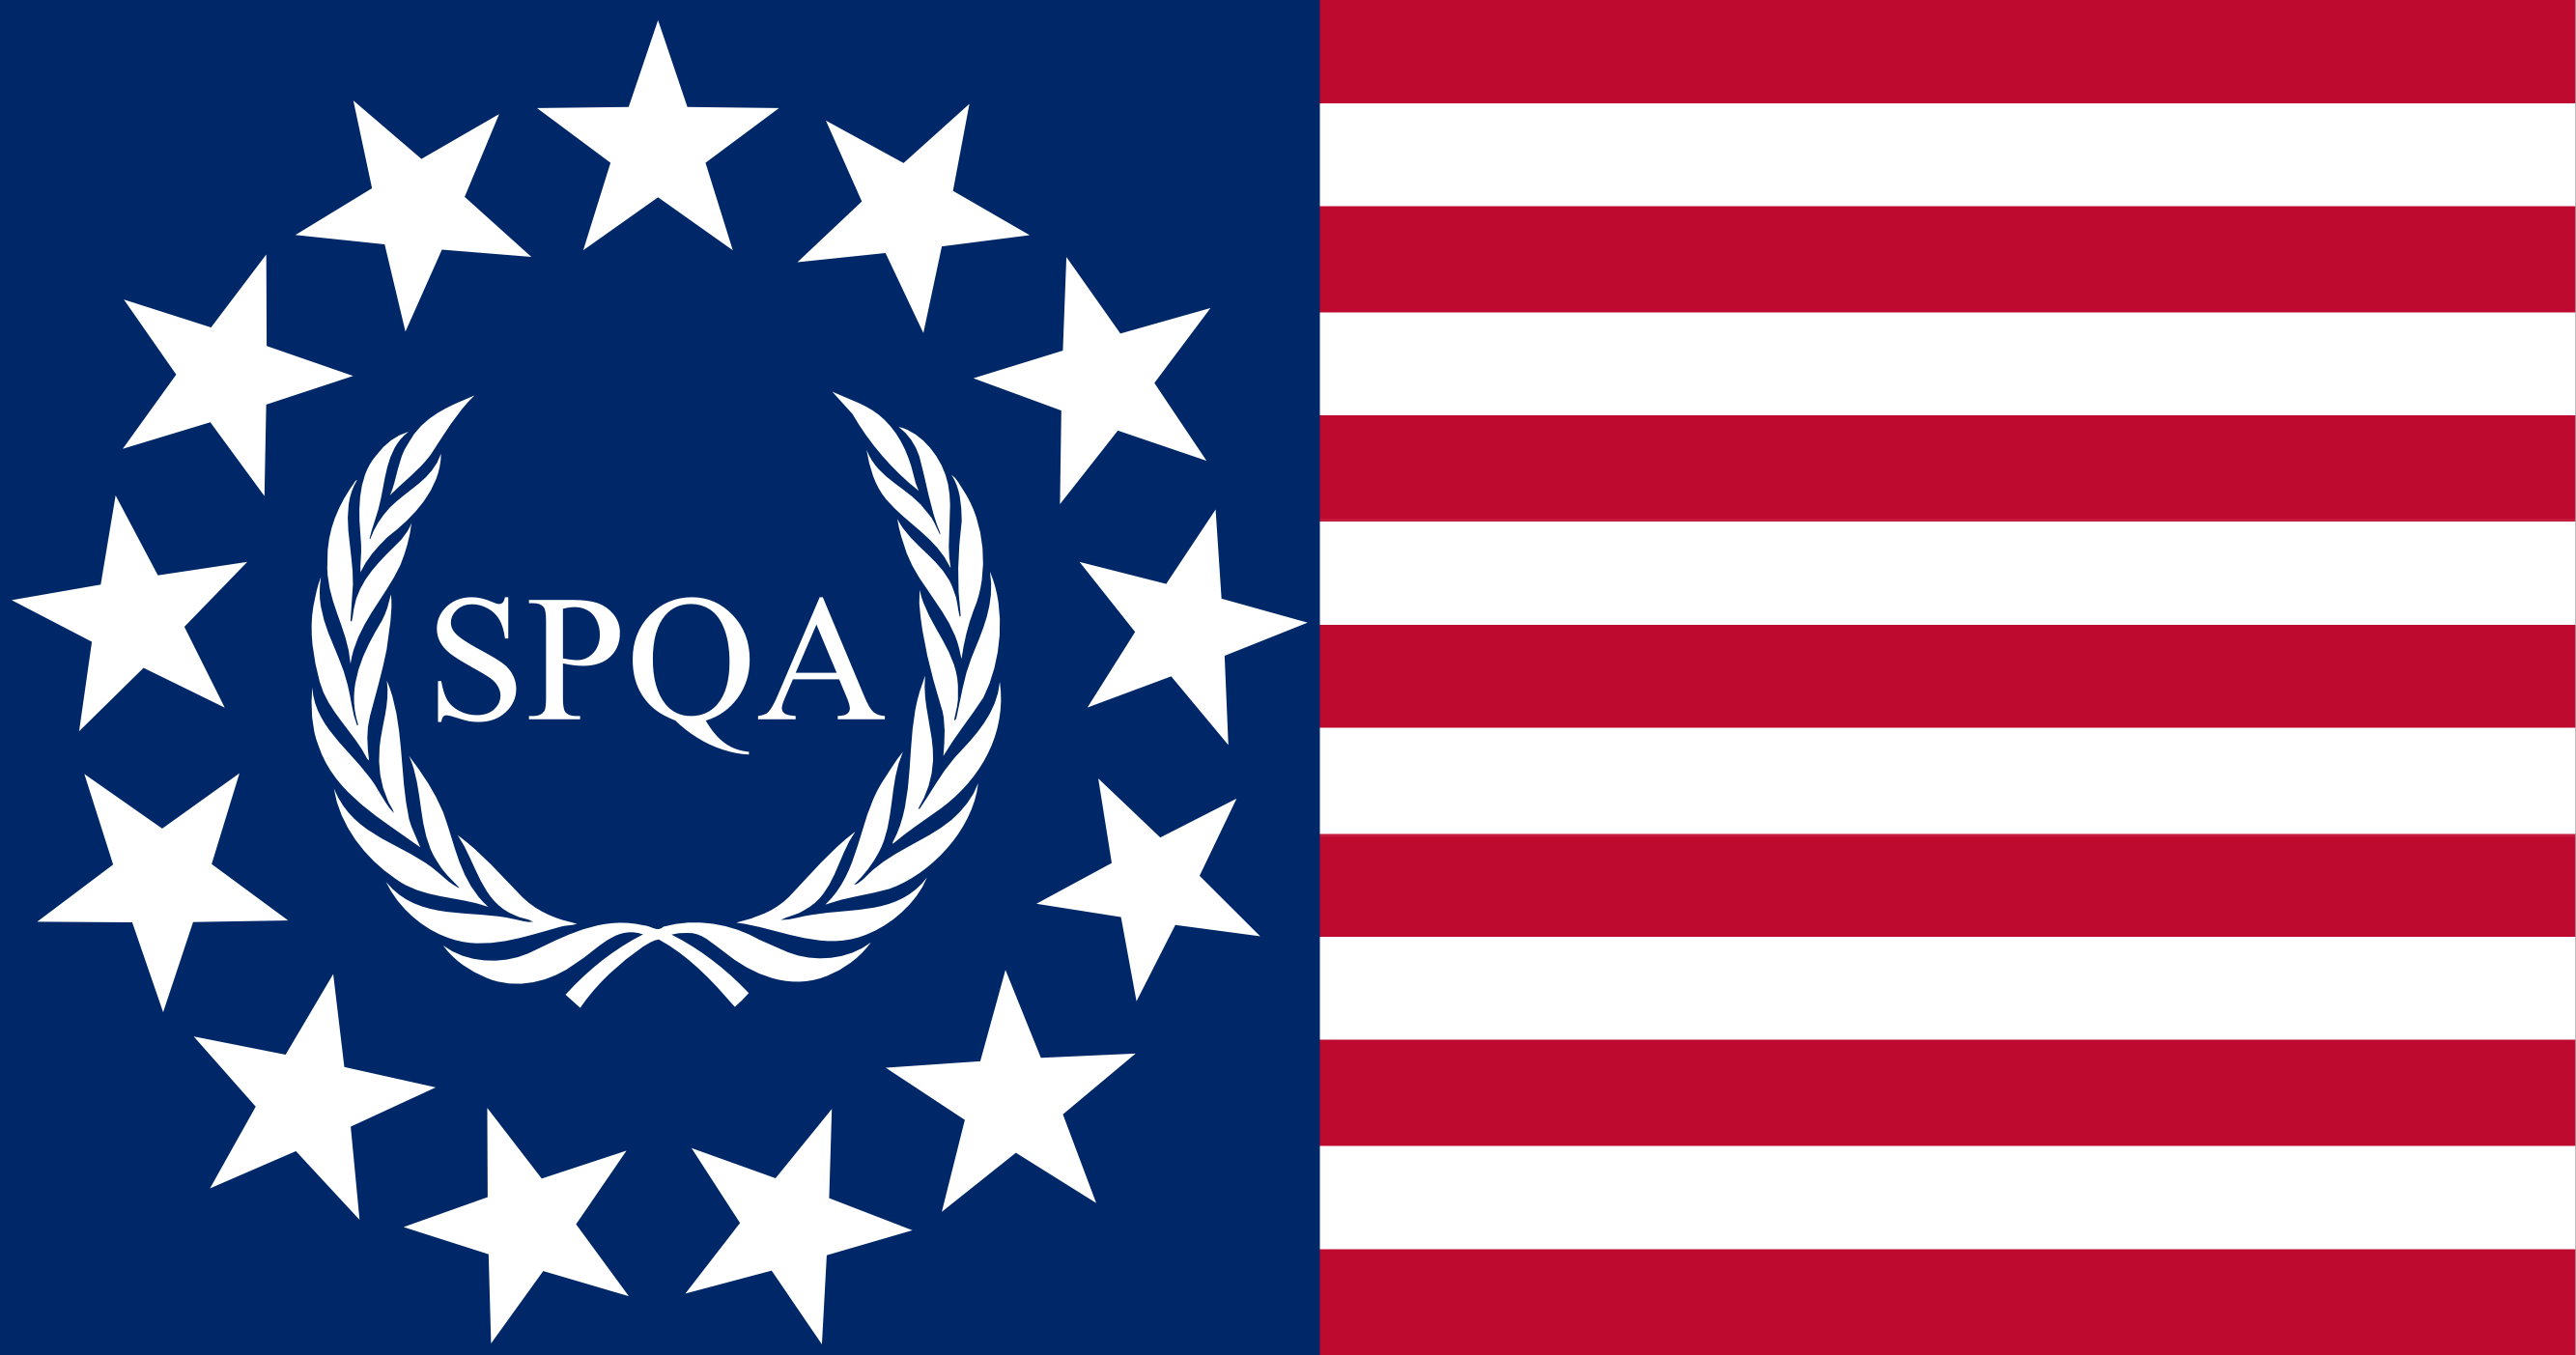 Flag Of An American Monarchy Page 2 Alternate History Discussion Flag Art Unique Flags Flag Design